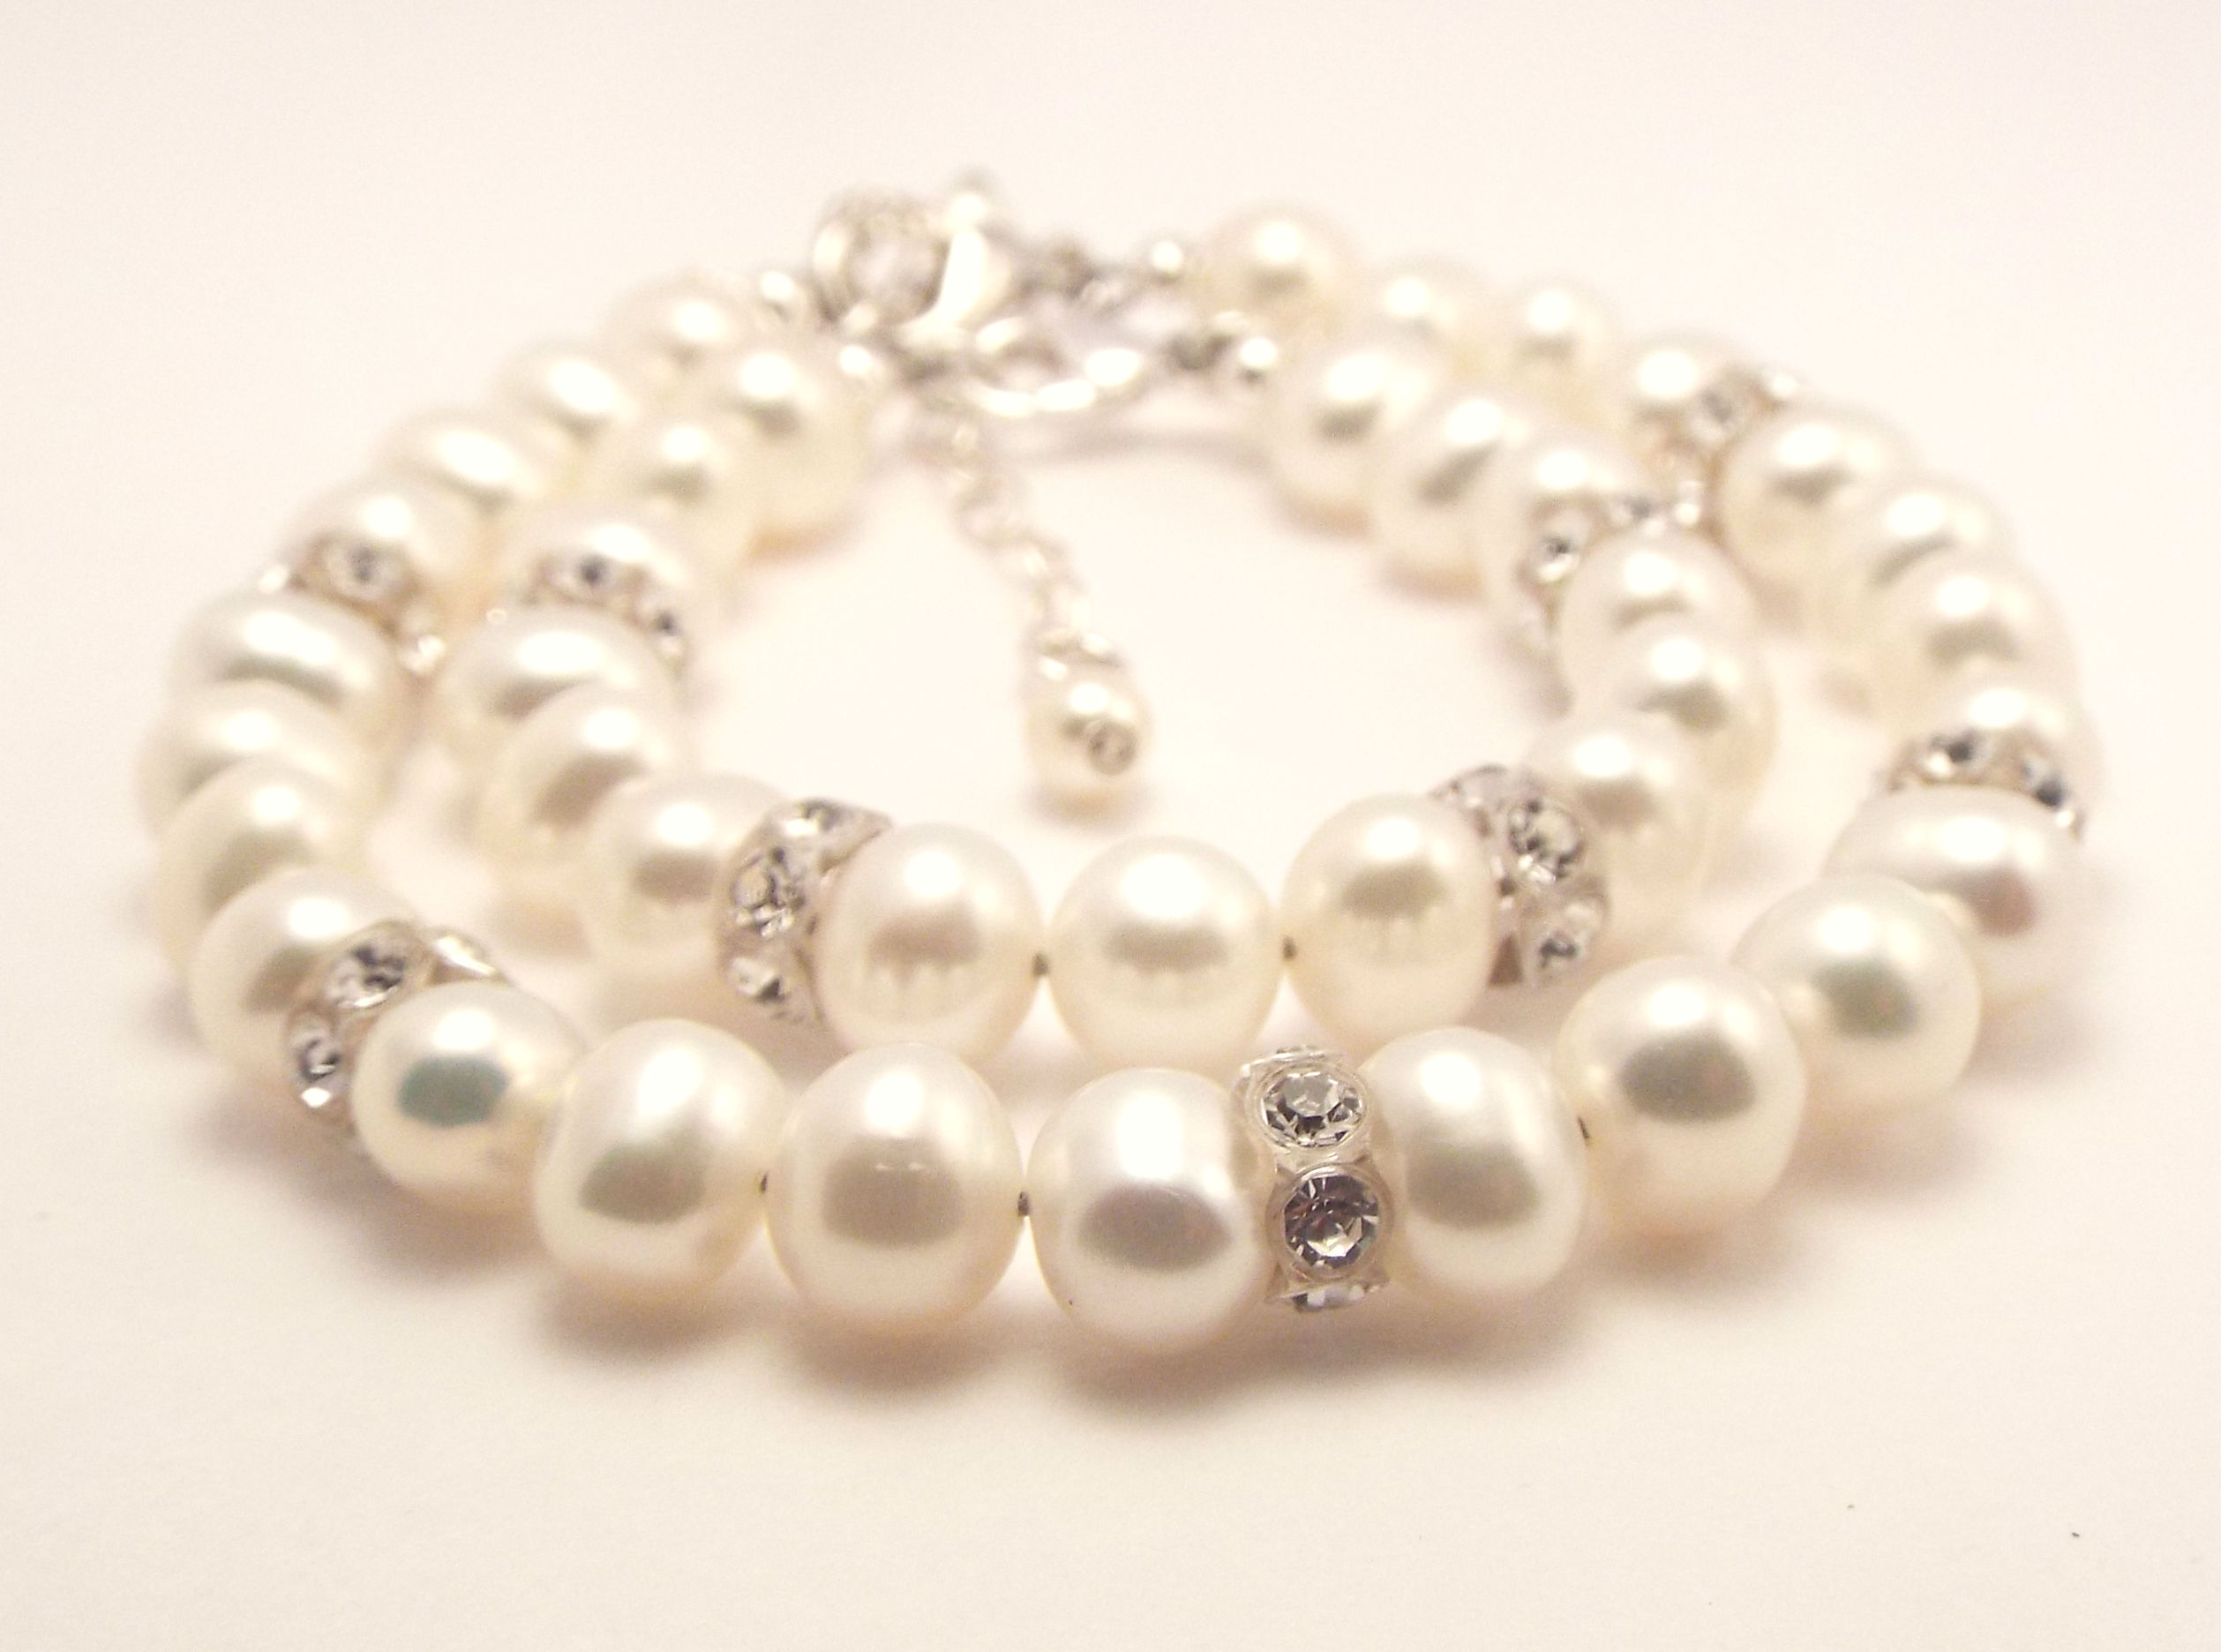 cathyspearlnecklace so not freshwater pearl colors natural pearls